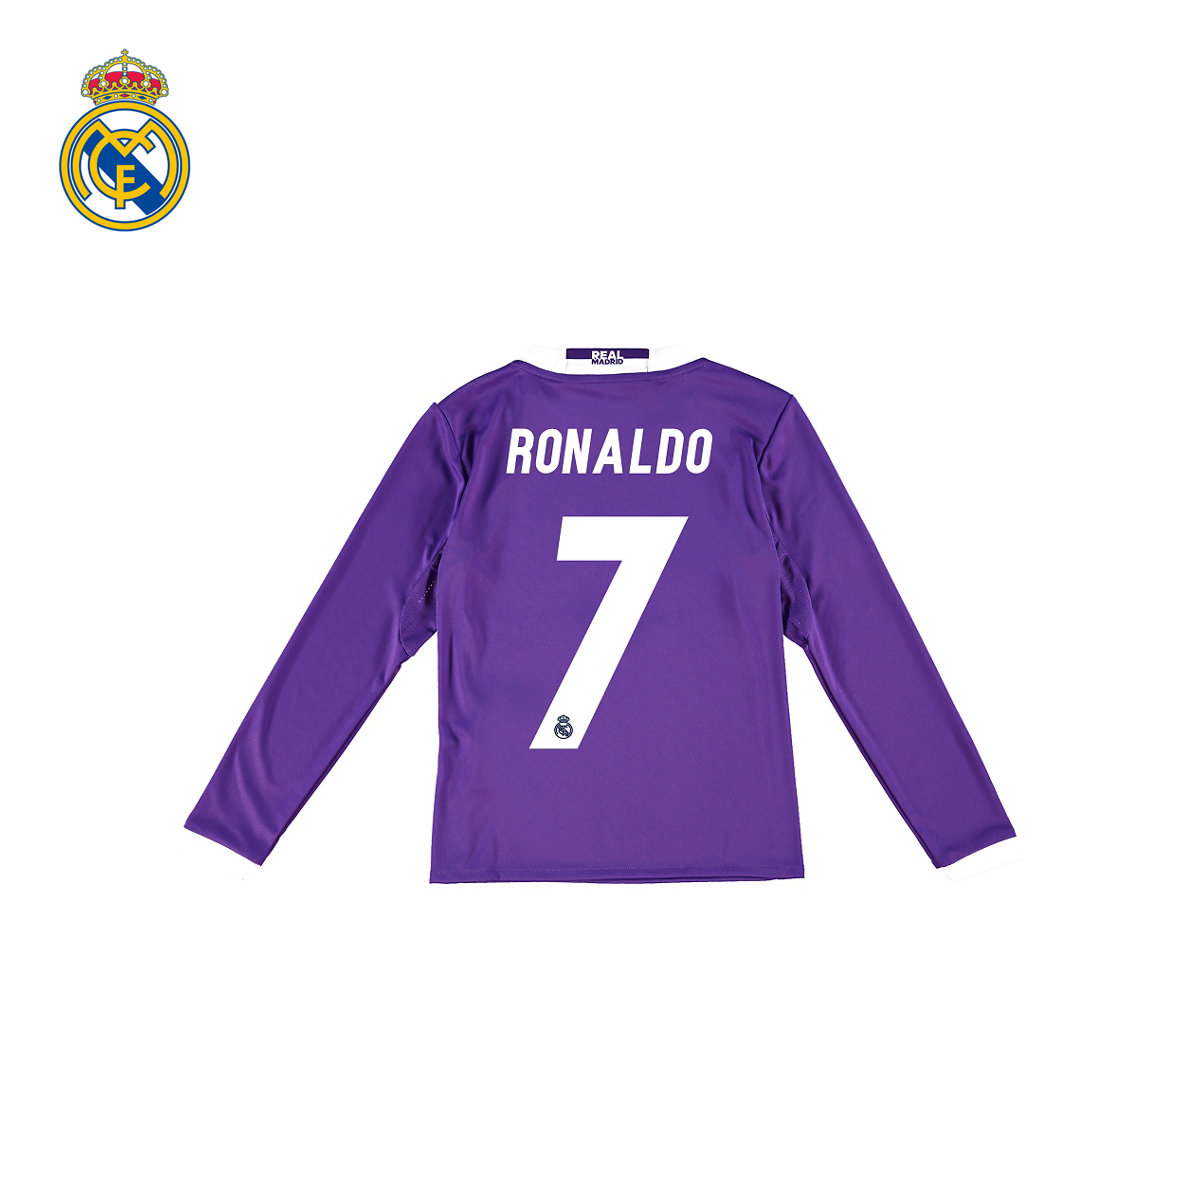 outlet store 1376e 07f0e Buy [Youth] real madrid real madrid c lo ronaldo 16/17 ...